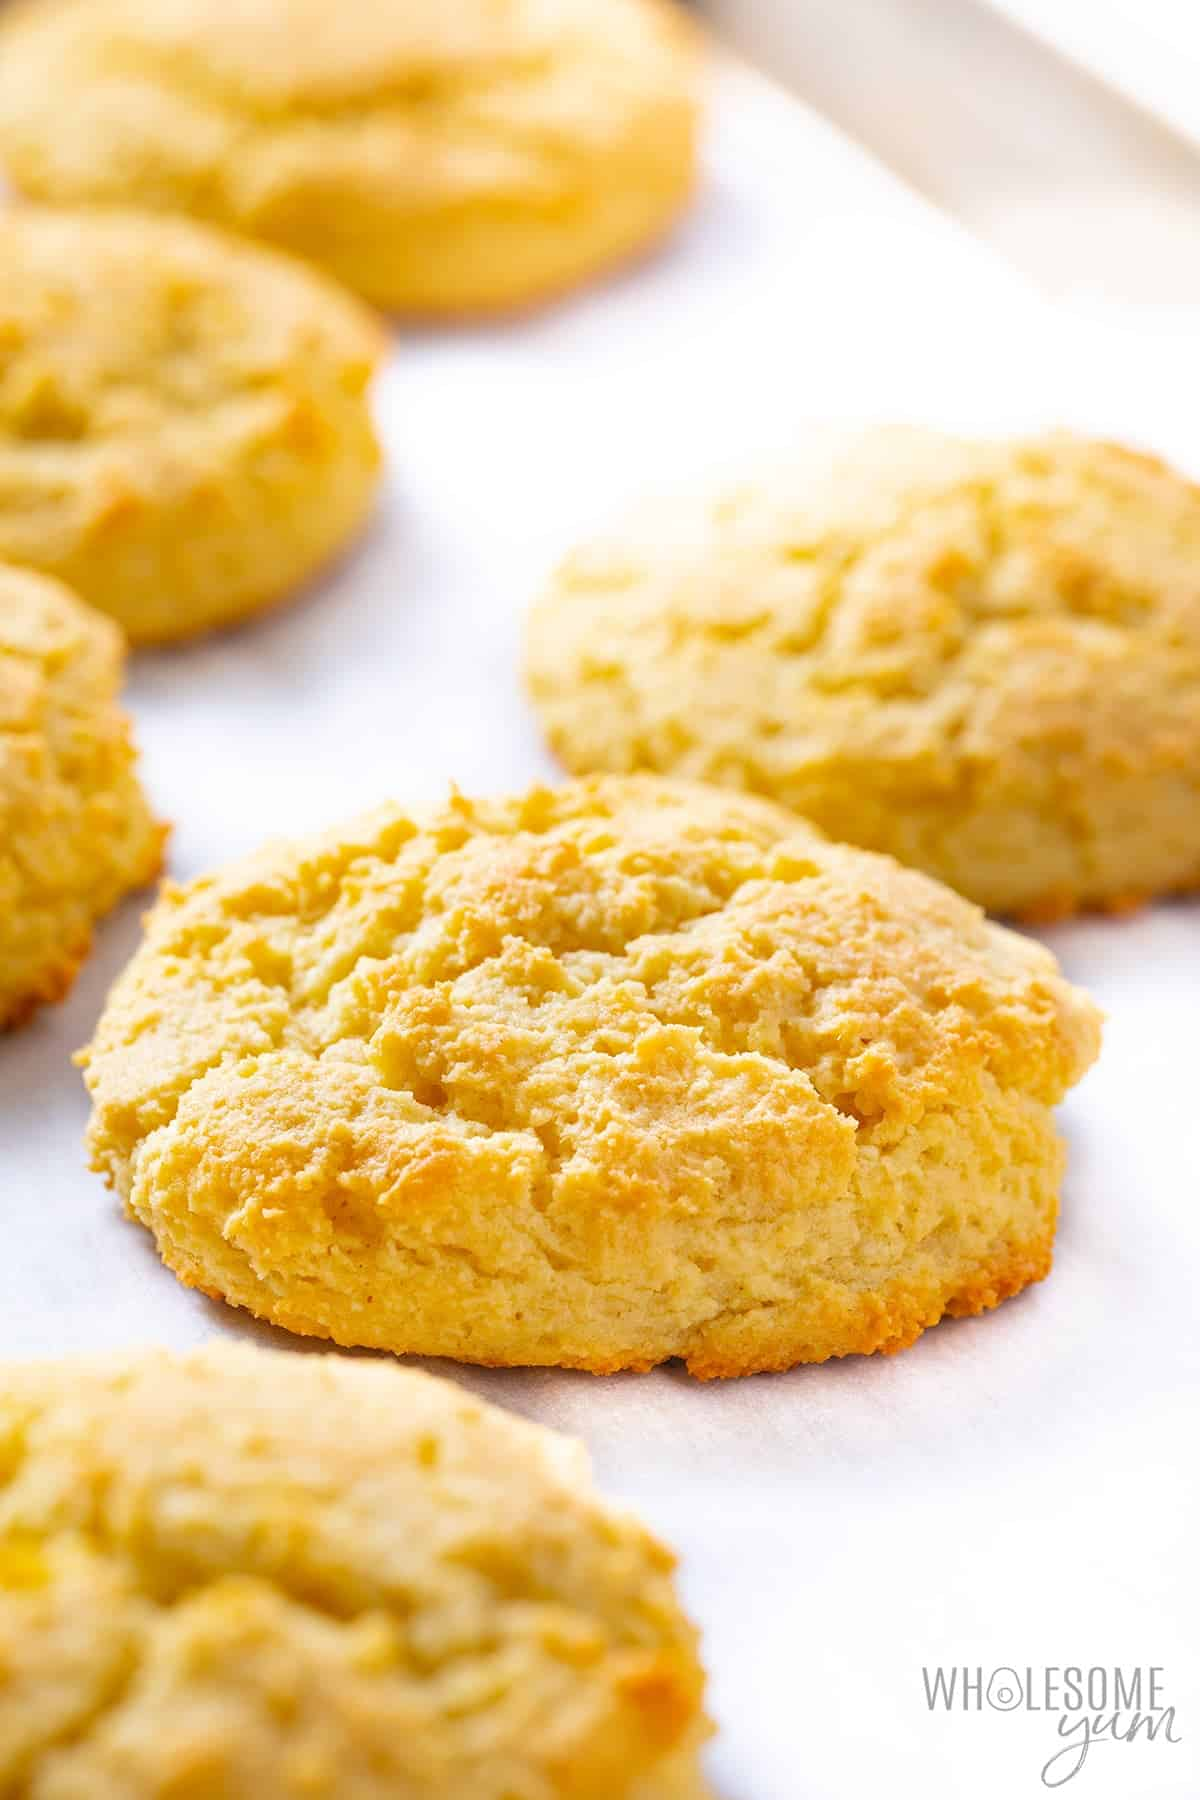 Finished keto biscuits with almond flour